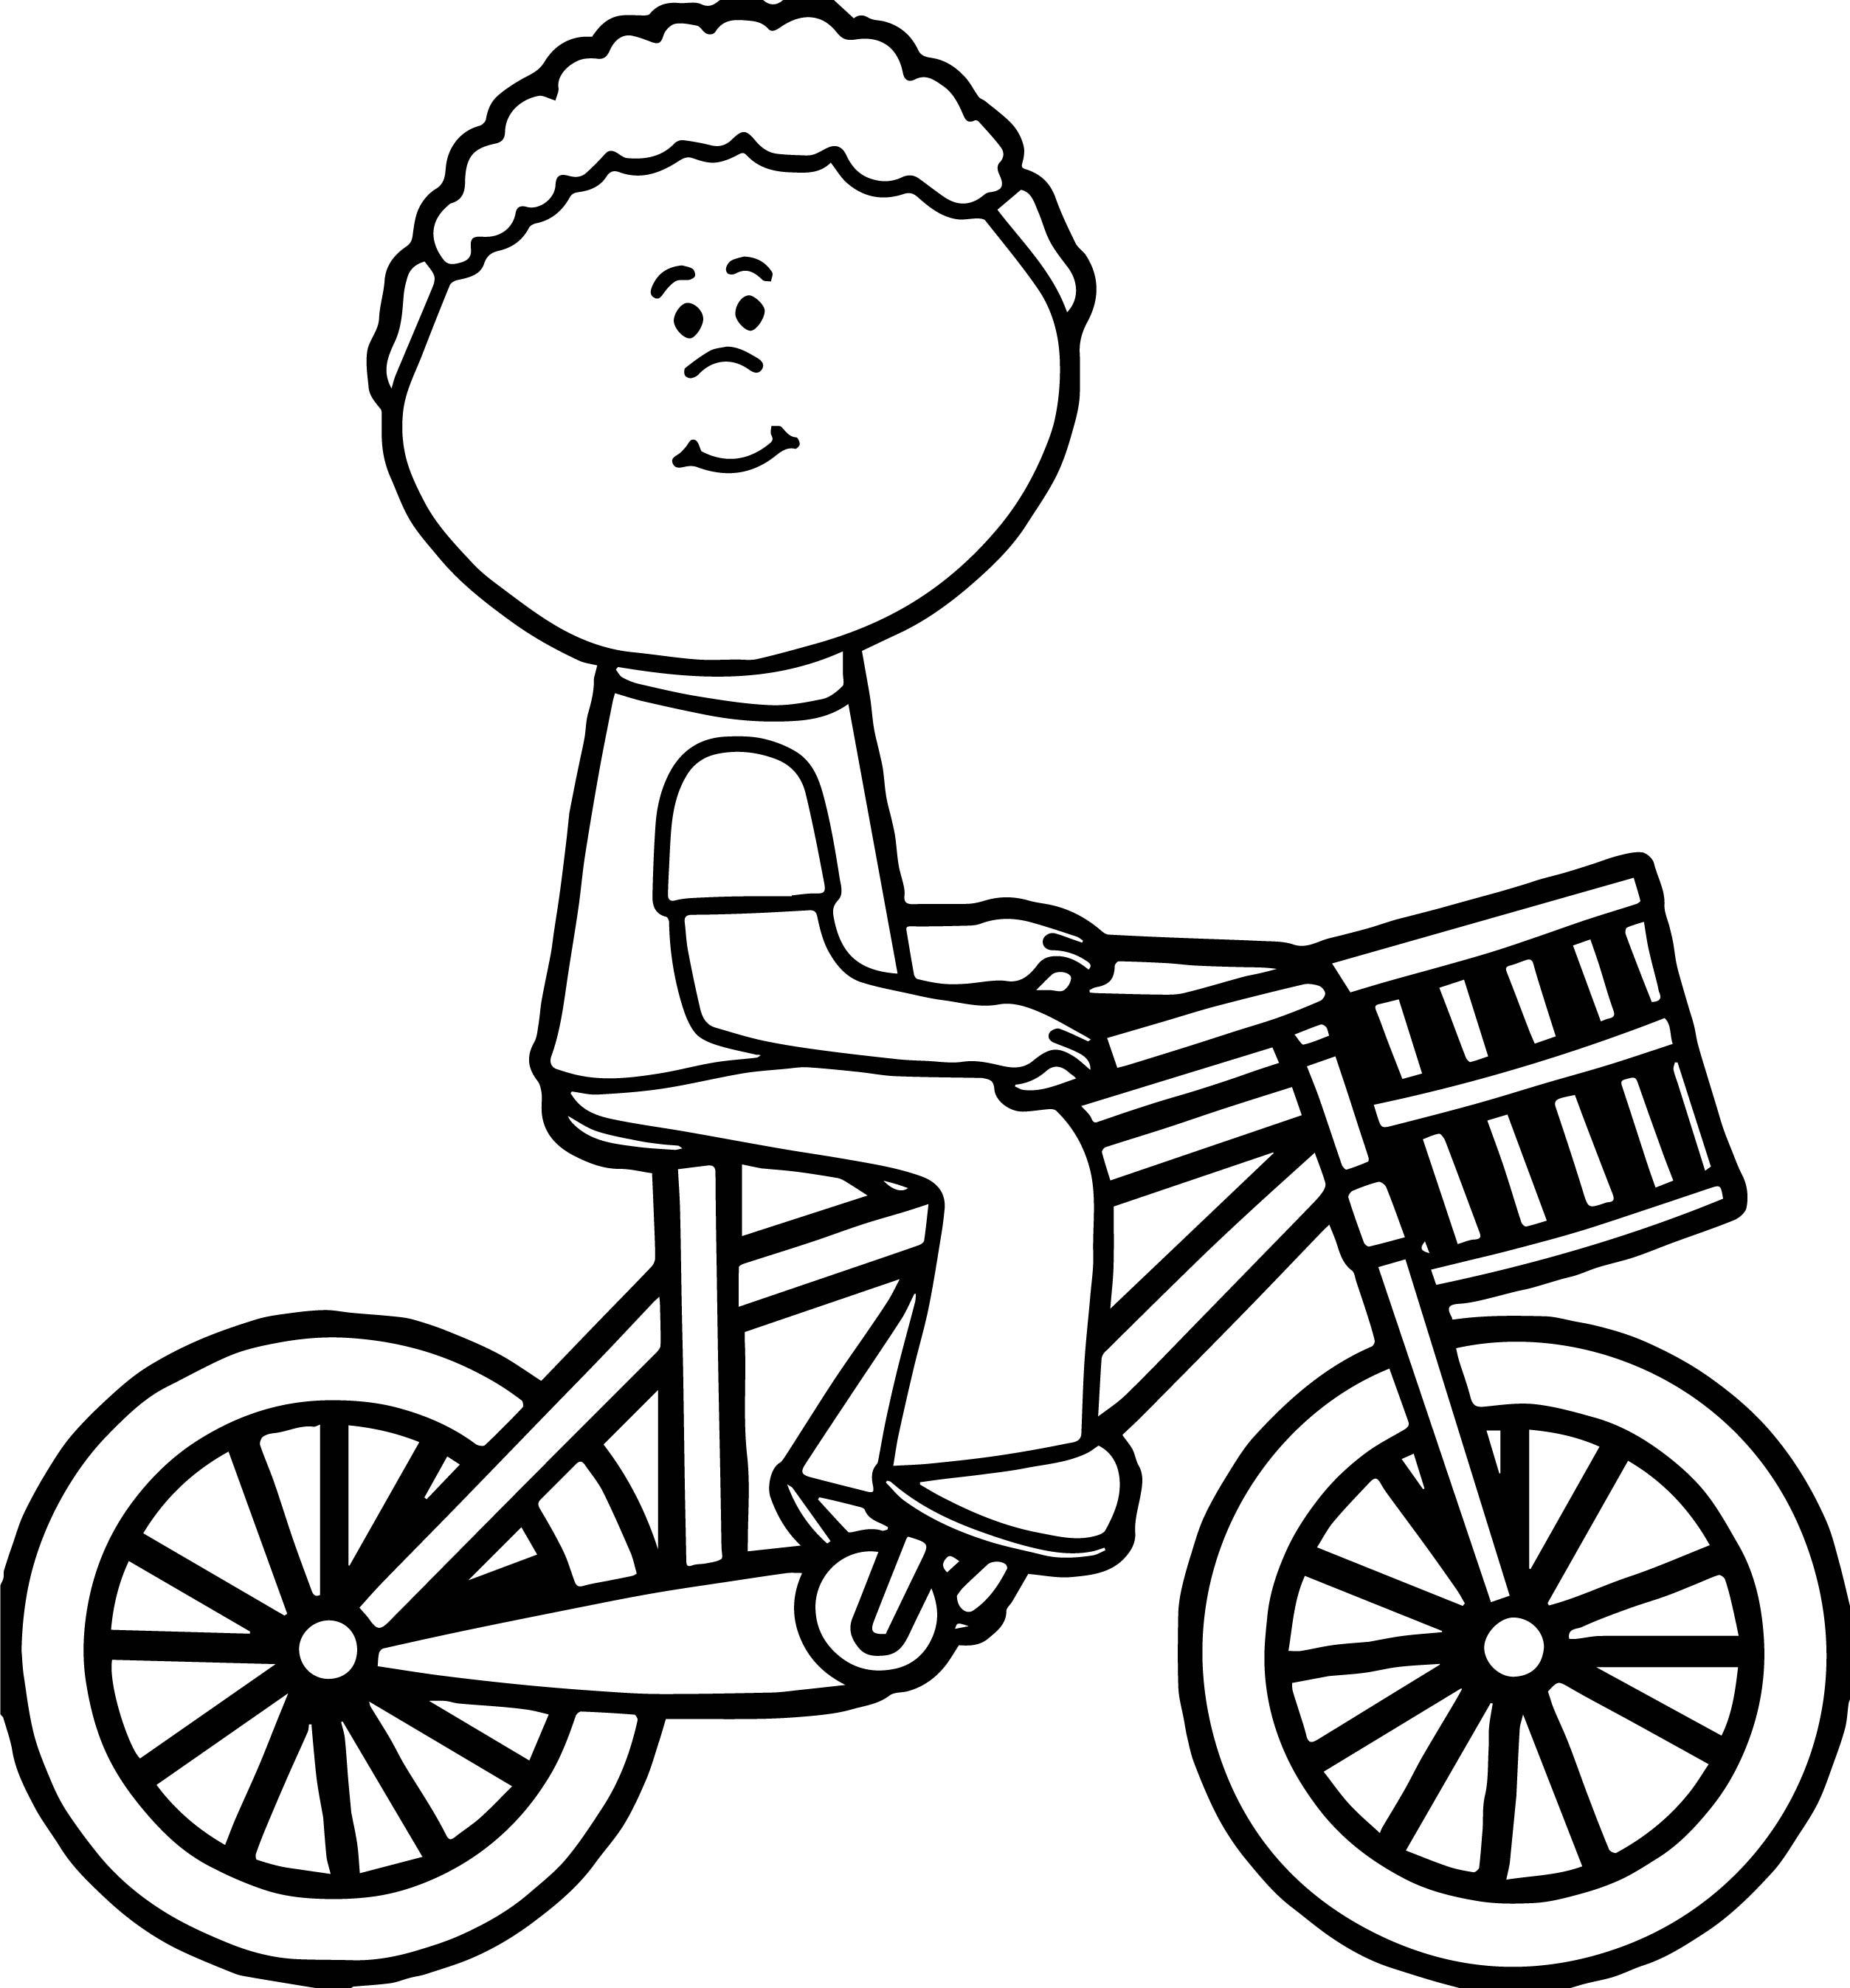 2507x2694 Unbelievable Coloring Bike Safety Picture Of Helmet Page Trend